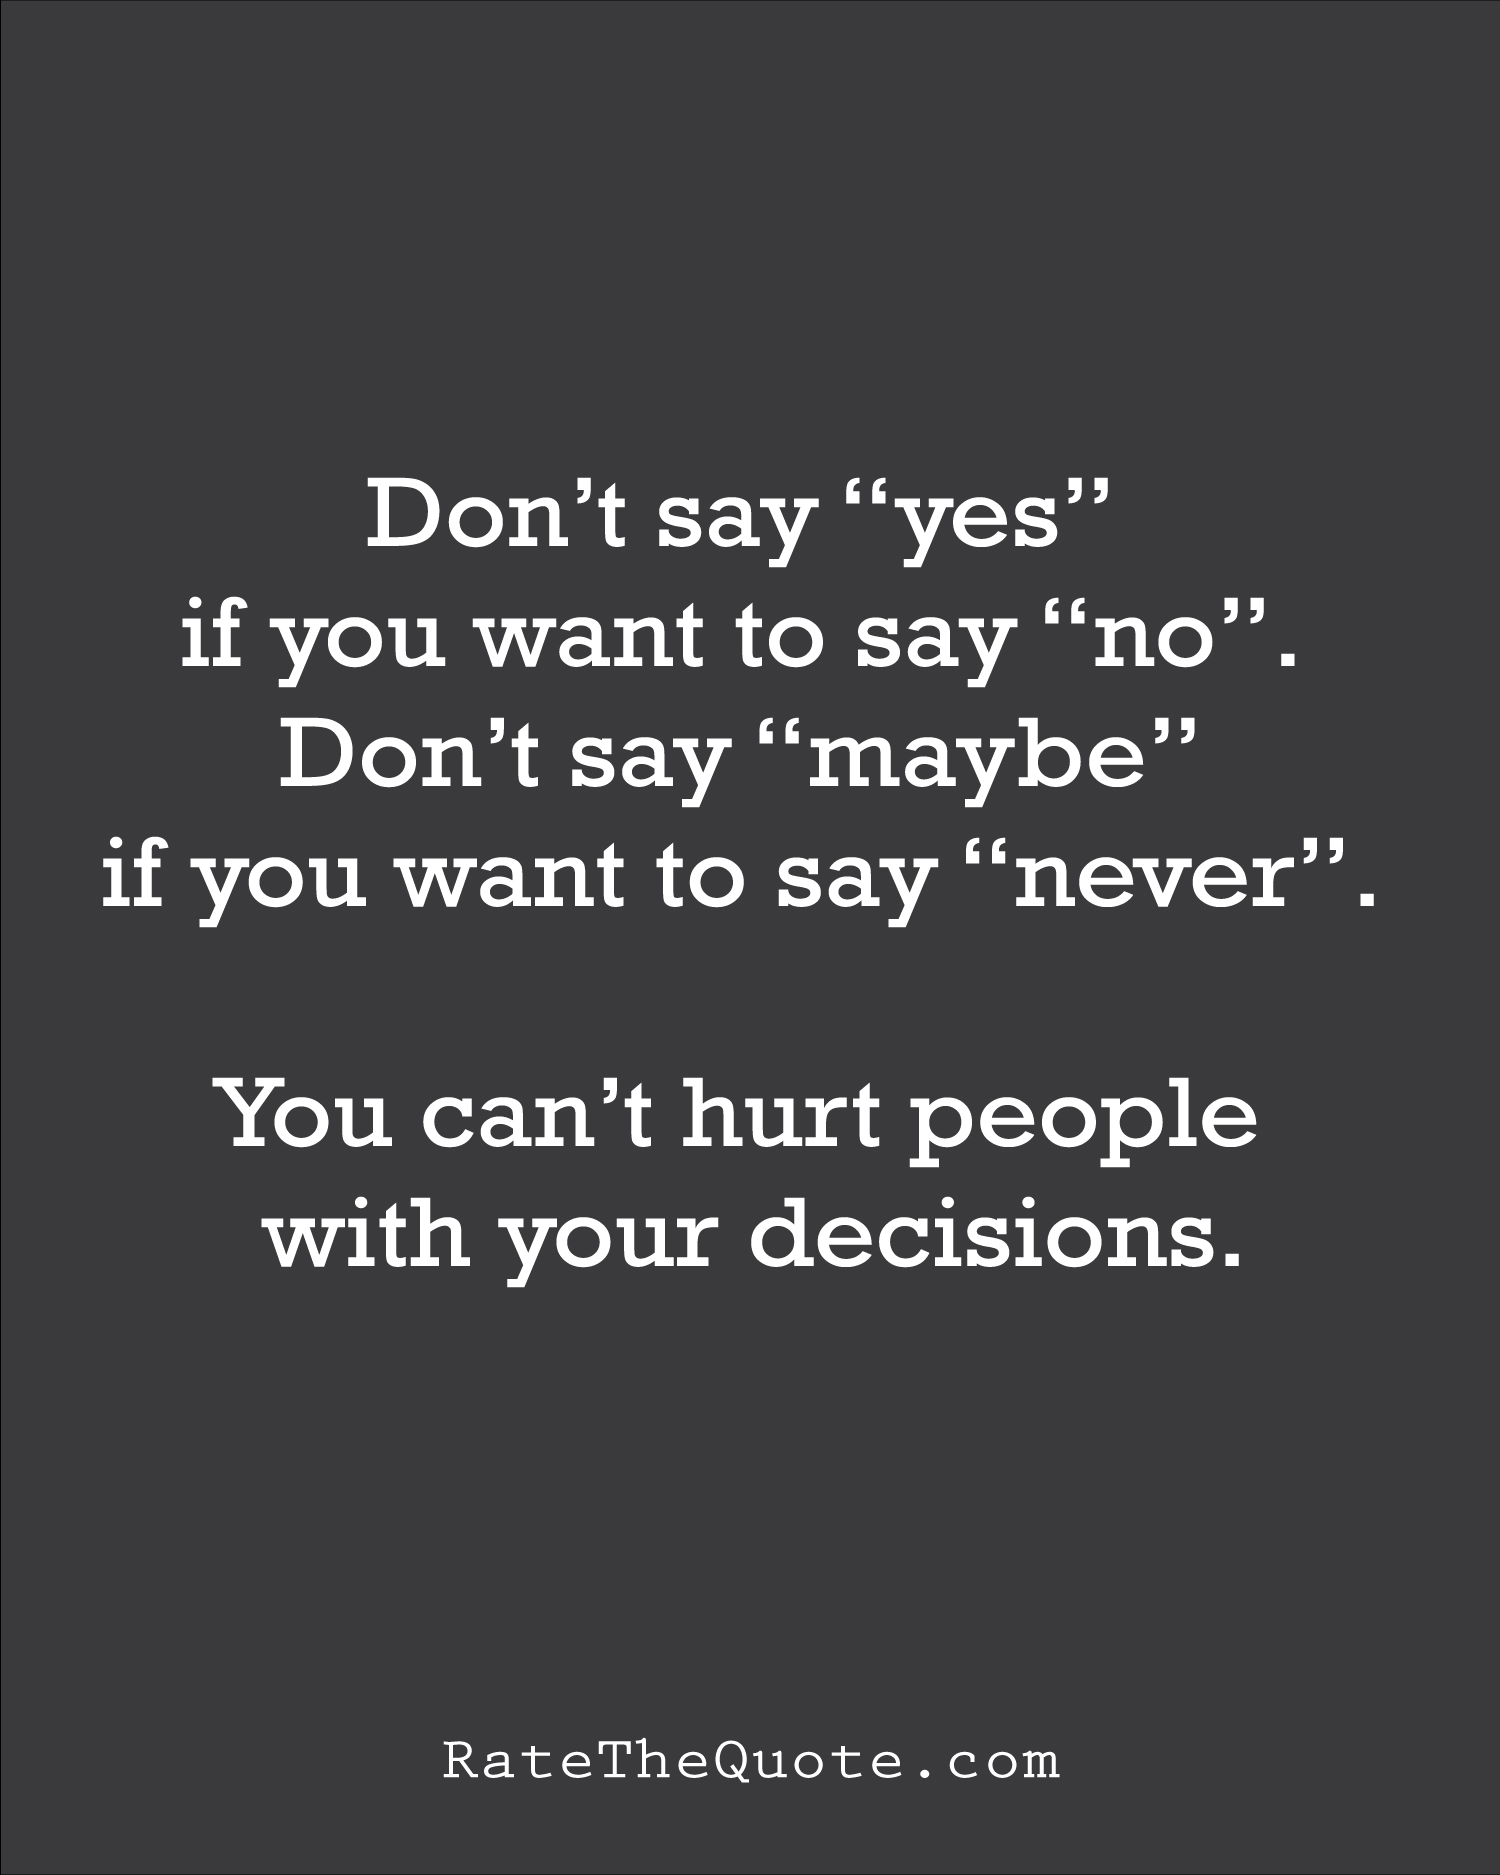 "Quote Don't say ""yes"" if you want to say ""no"". Don't say ""maybe"" if you want to say ""never"". You can't hurt people with your decisions."